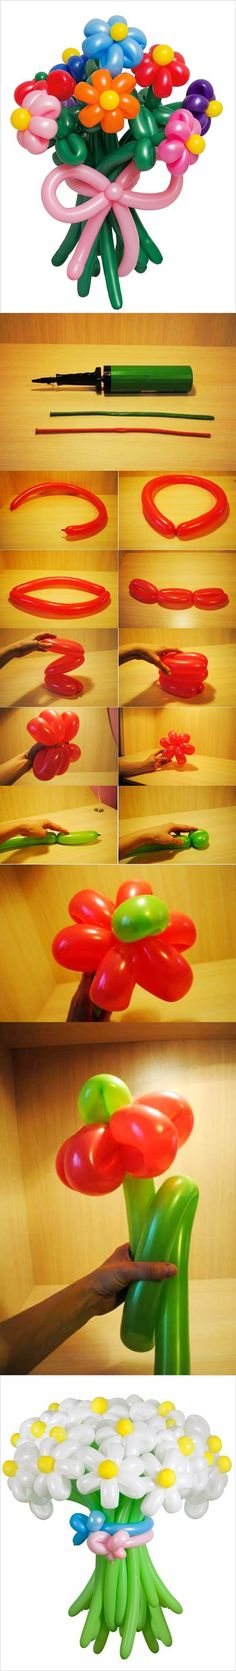 DIY Balloon Flowers | iCreativeIdeas.com Like Us on Facebook ==> https://www.facebook.com/icreativeideas